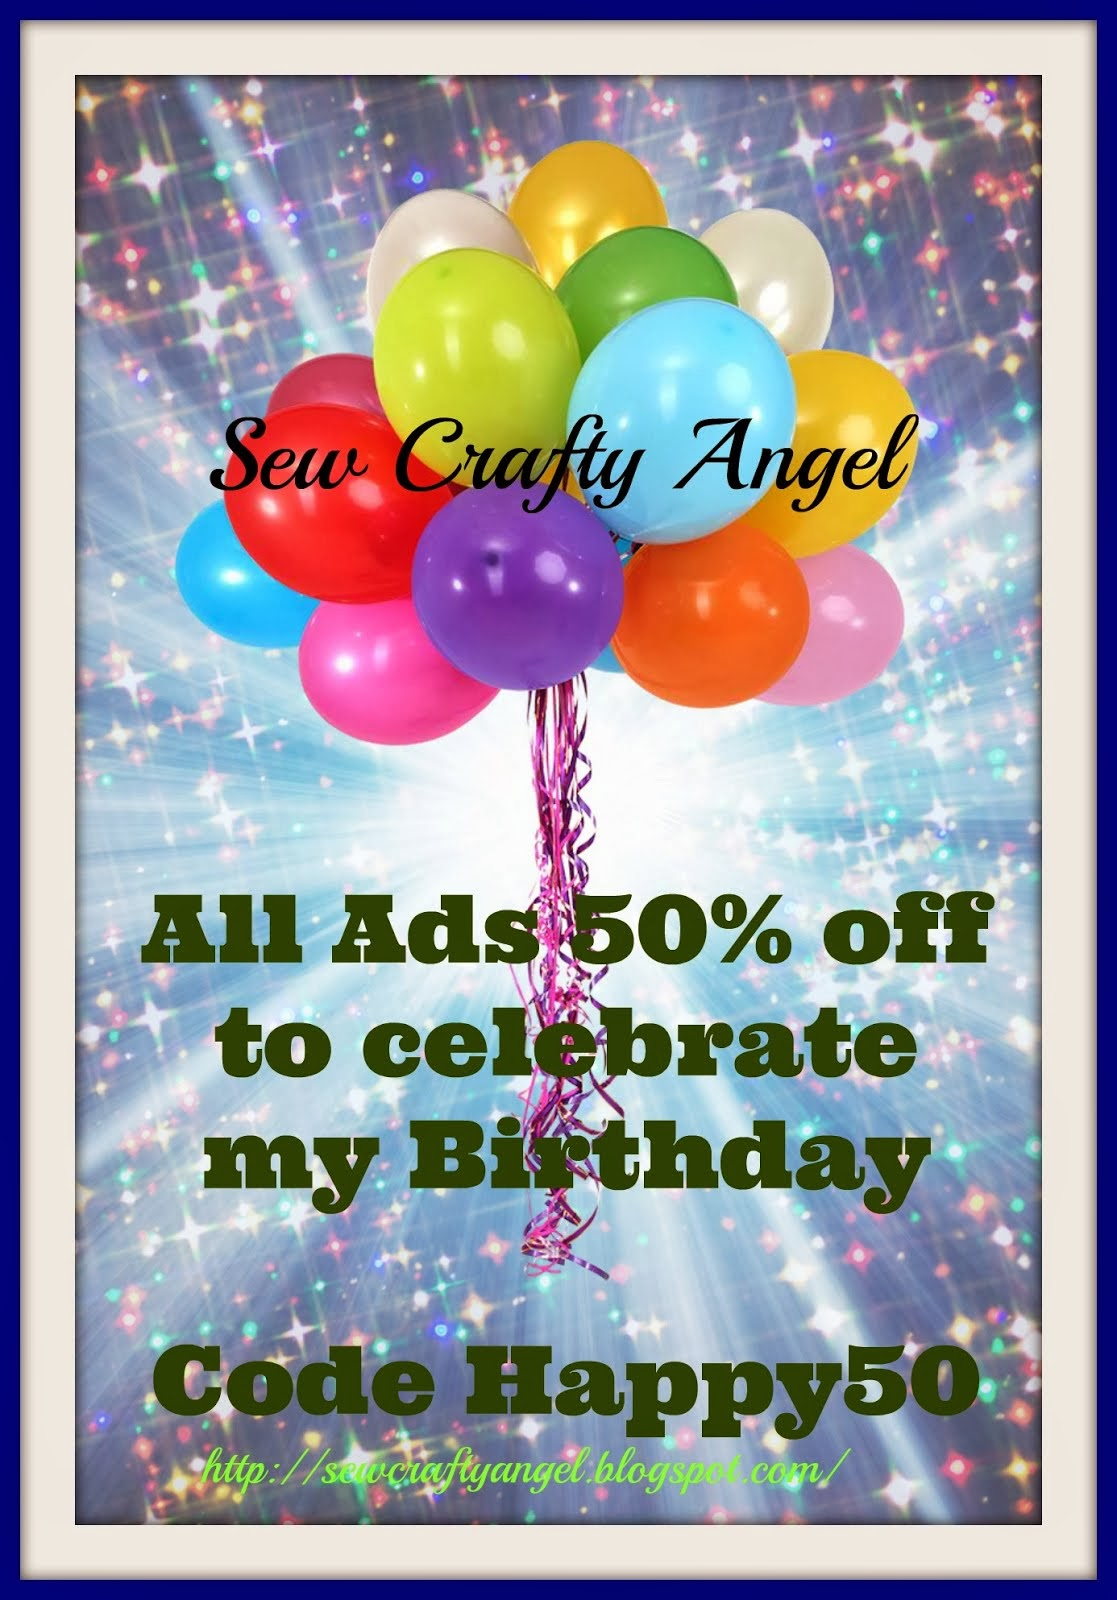 Sale - All Ads 50% Ends 12/31/13